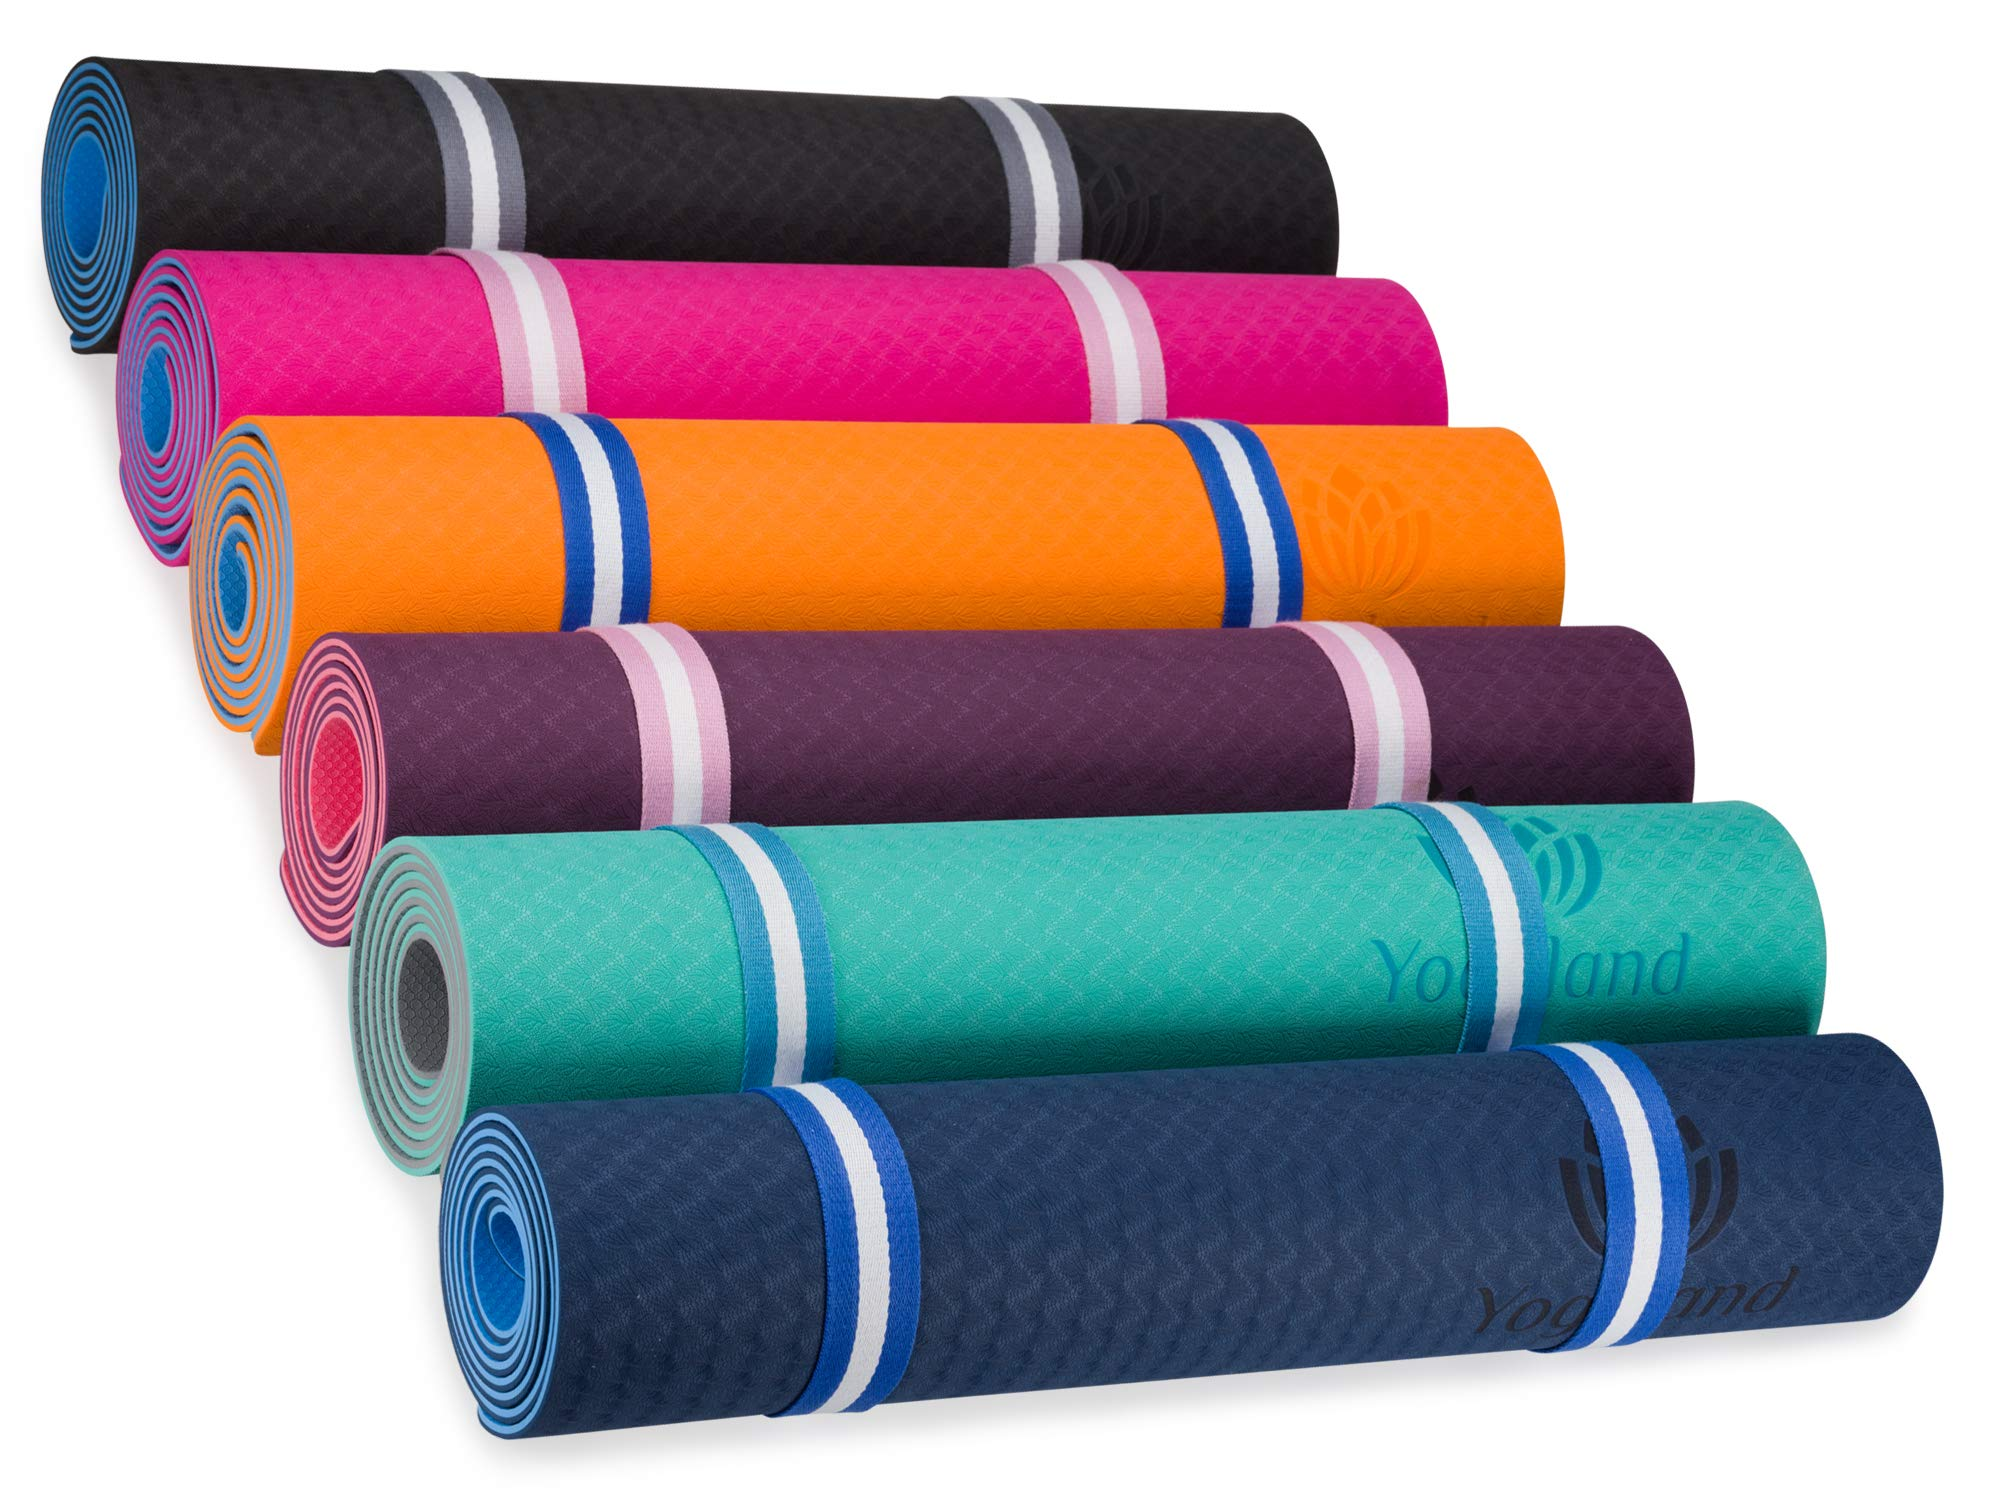 YOGALAND Premium Yoga Mat with Carrier Strap - Yoga Mat 6mm 1/4-Inch Thick, Non-Slip, Eco-Friendly Lightweight, Extra Large 72 x 24 for Yoga, Pilates, Exercise, Fitness (Dark Gray)